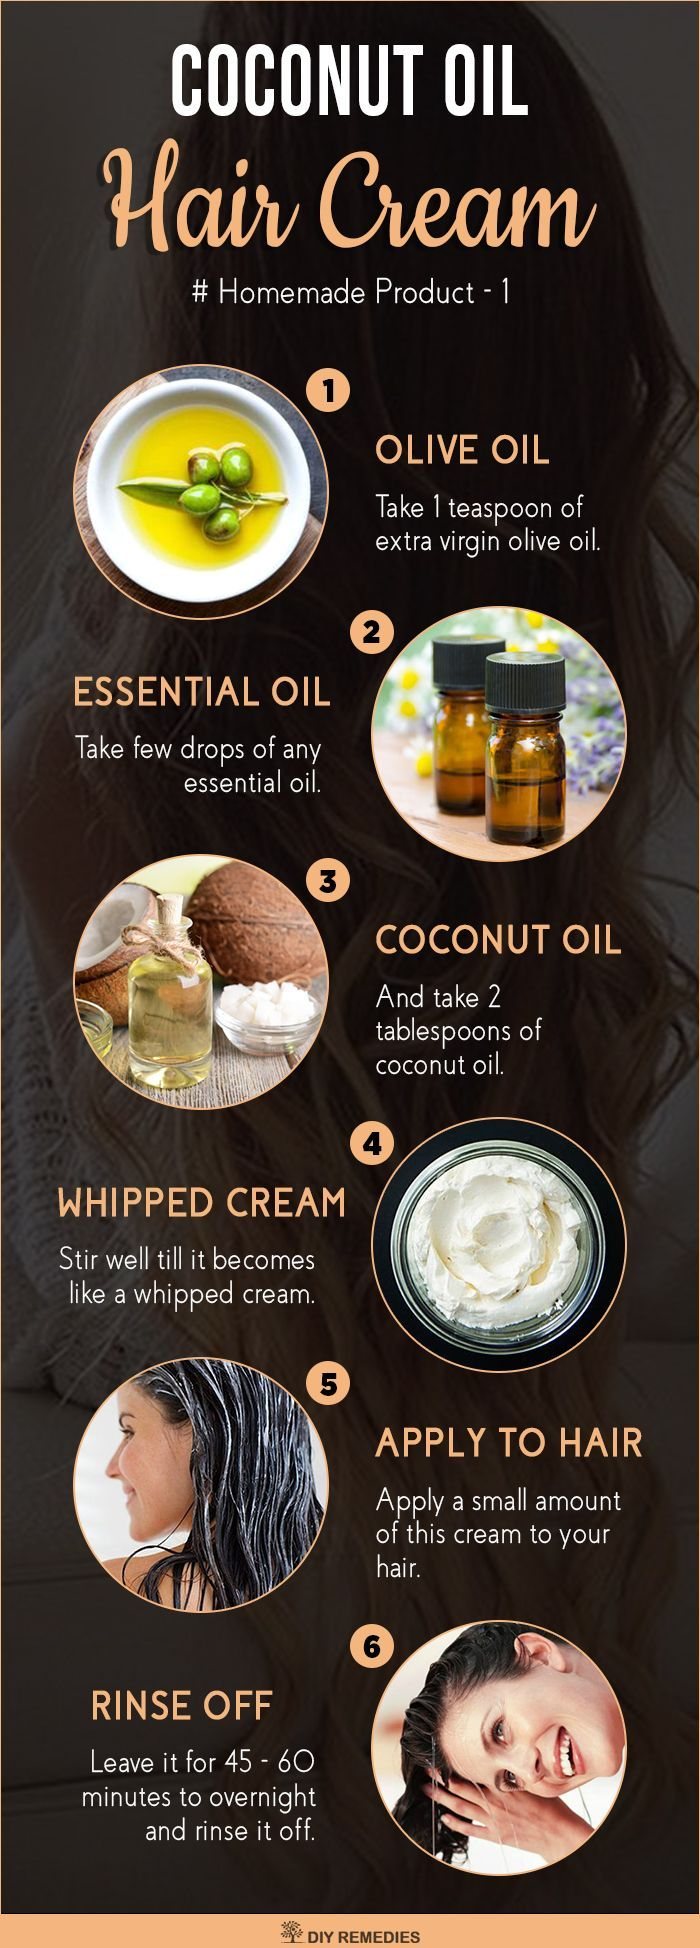 Coconut Oil Hair Cream Usage of this hair cream will deeply nourish your dry or dull hair and provides you with a moisturized shiny hair. #Hair #HairCream #HairGrowth #HairCareProducts